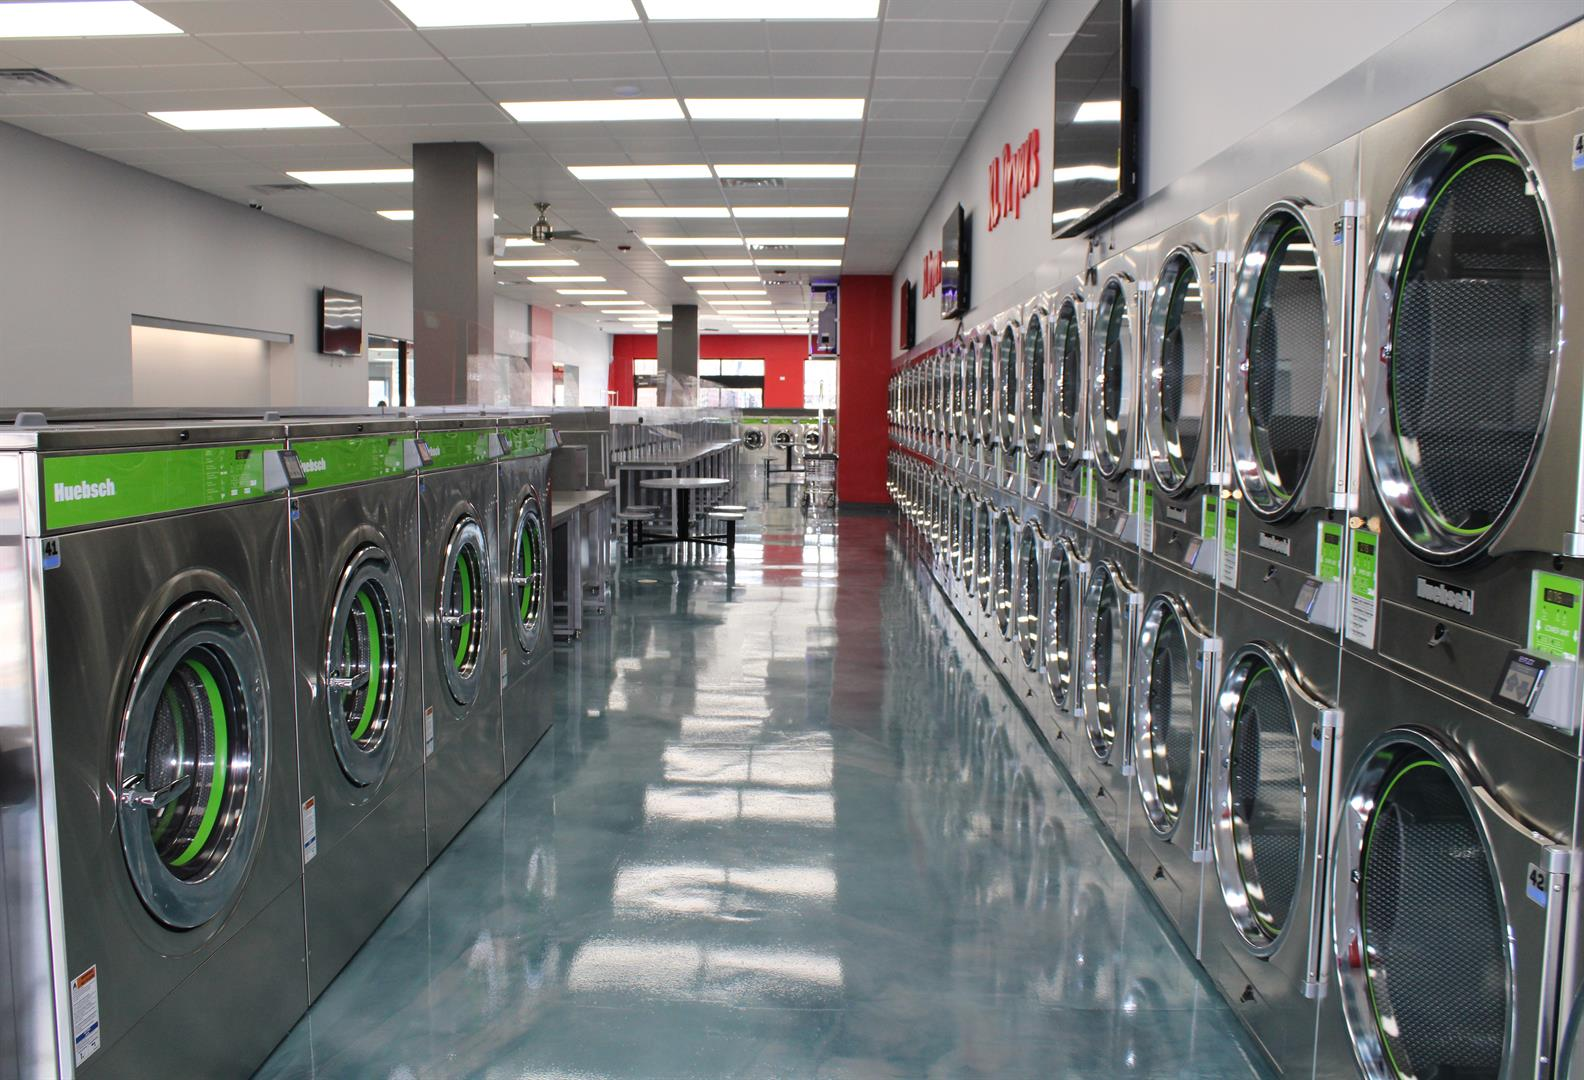 Gallery Image Picture_1_-_Washers_and_dryers.jpg